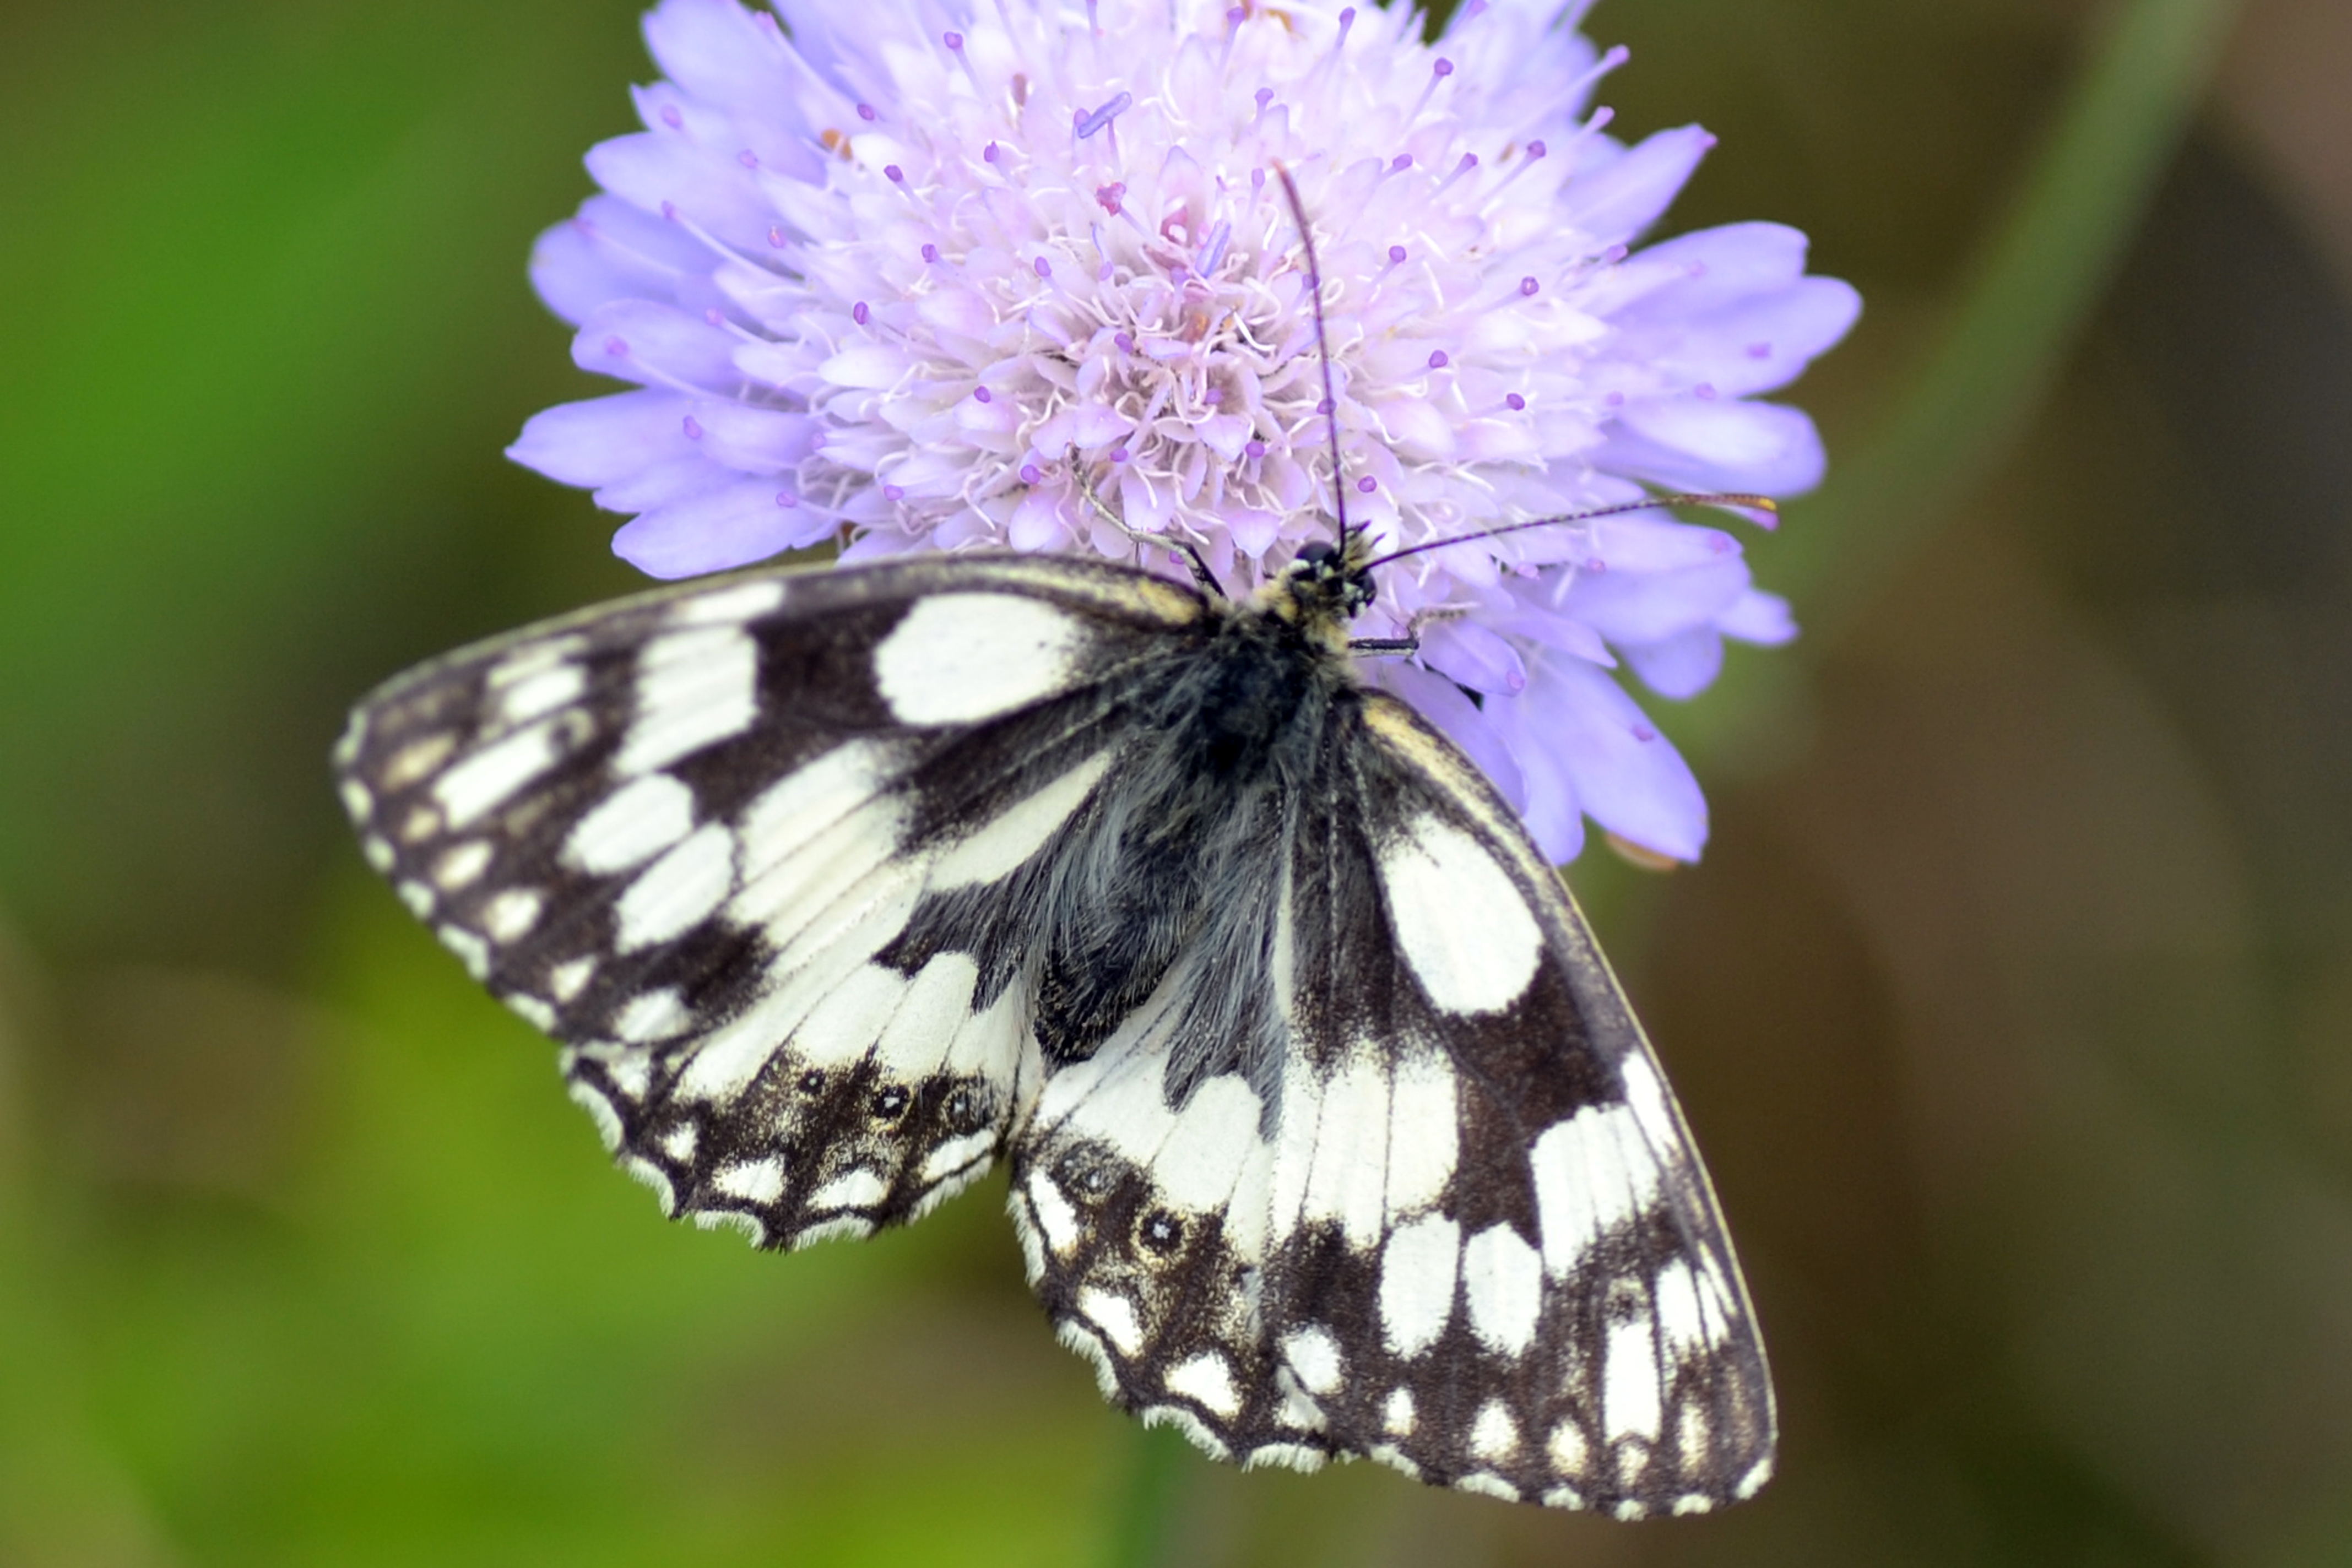 Marbled white butterfly, Melanargia galathea, on Scabious at Upper Seeds, Wytham Woods, Oxfordshire